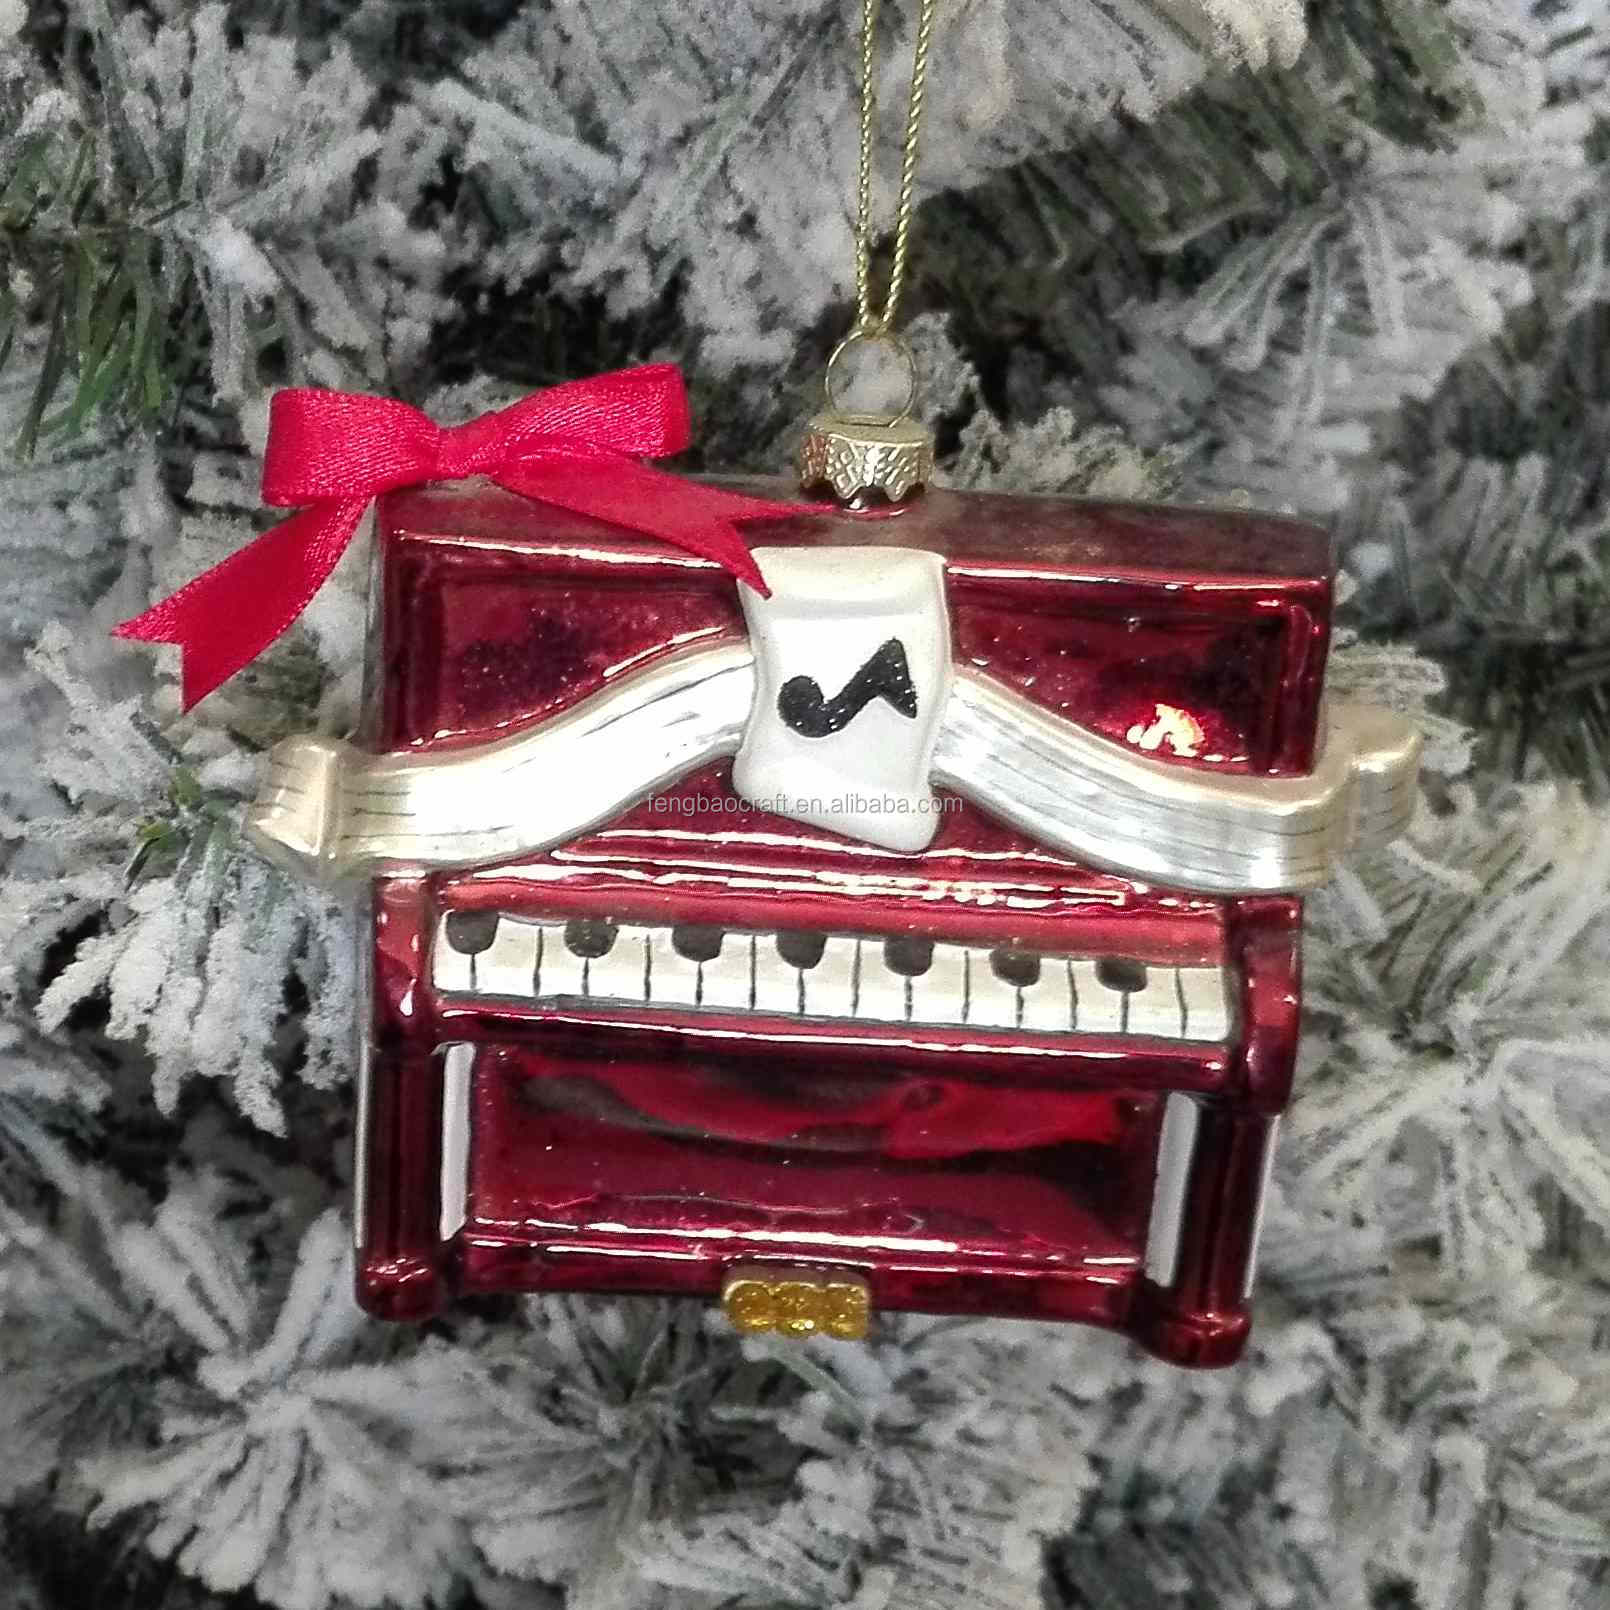 2017 Most Popular Music Instruments Christmas Pendant custom made christmas ornaments manufactured in China